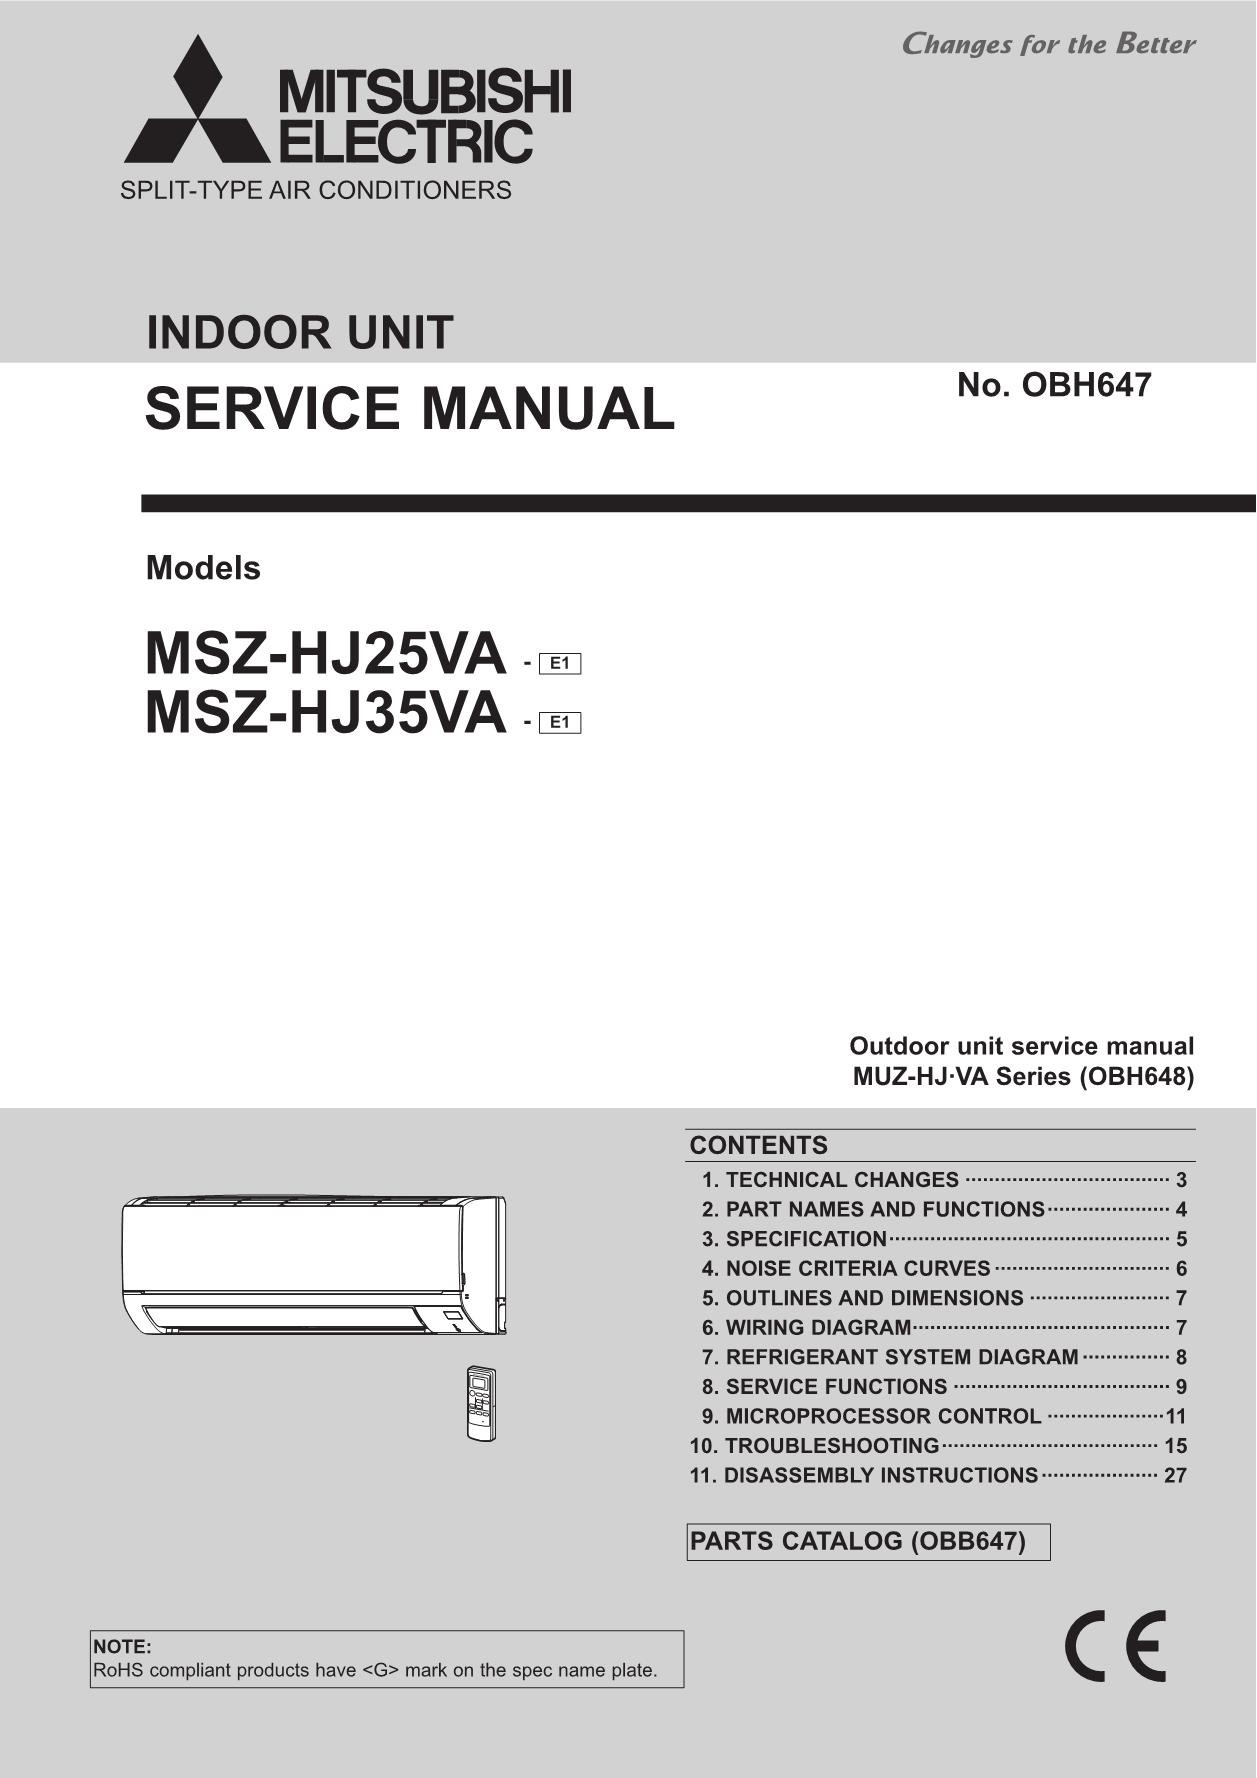 hight resolution of ac mitsubishi obh647 pages 1 32 text version fliphtml5ac mitsubishi obh647